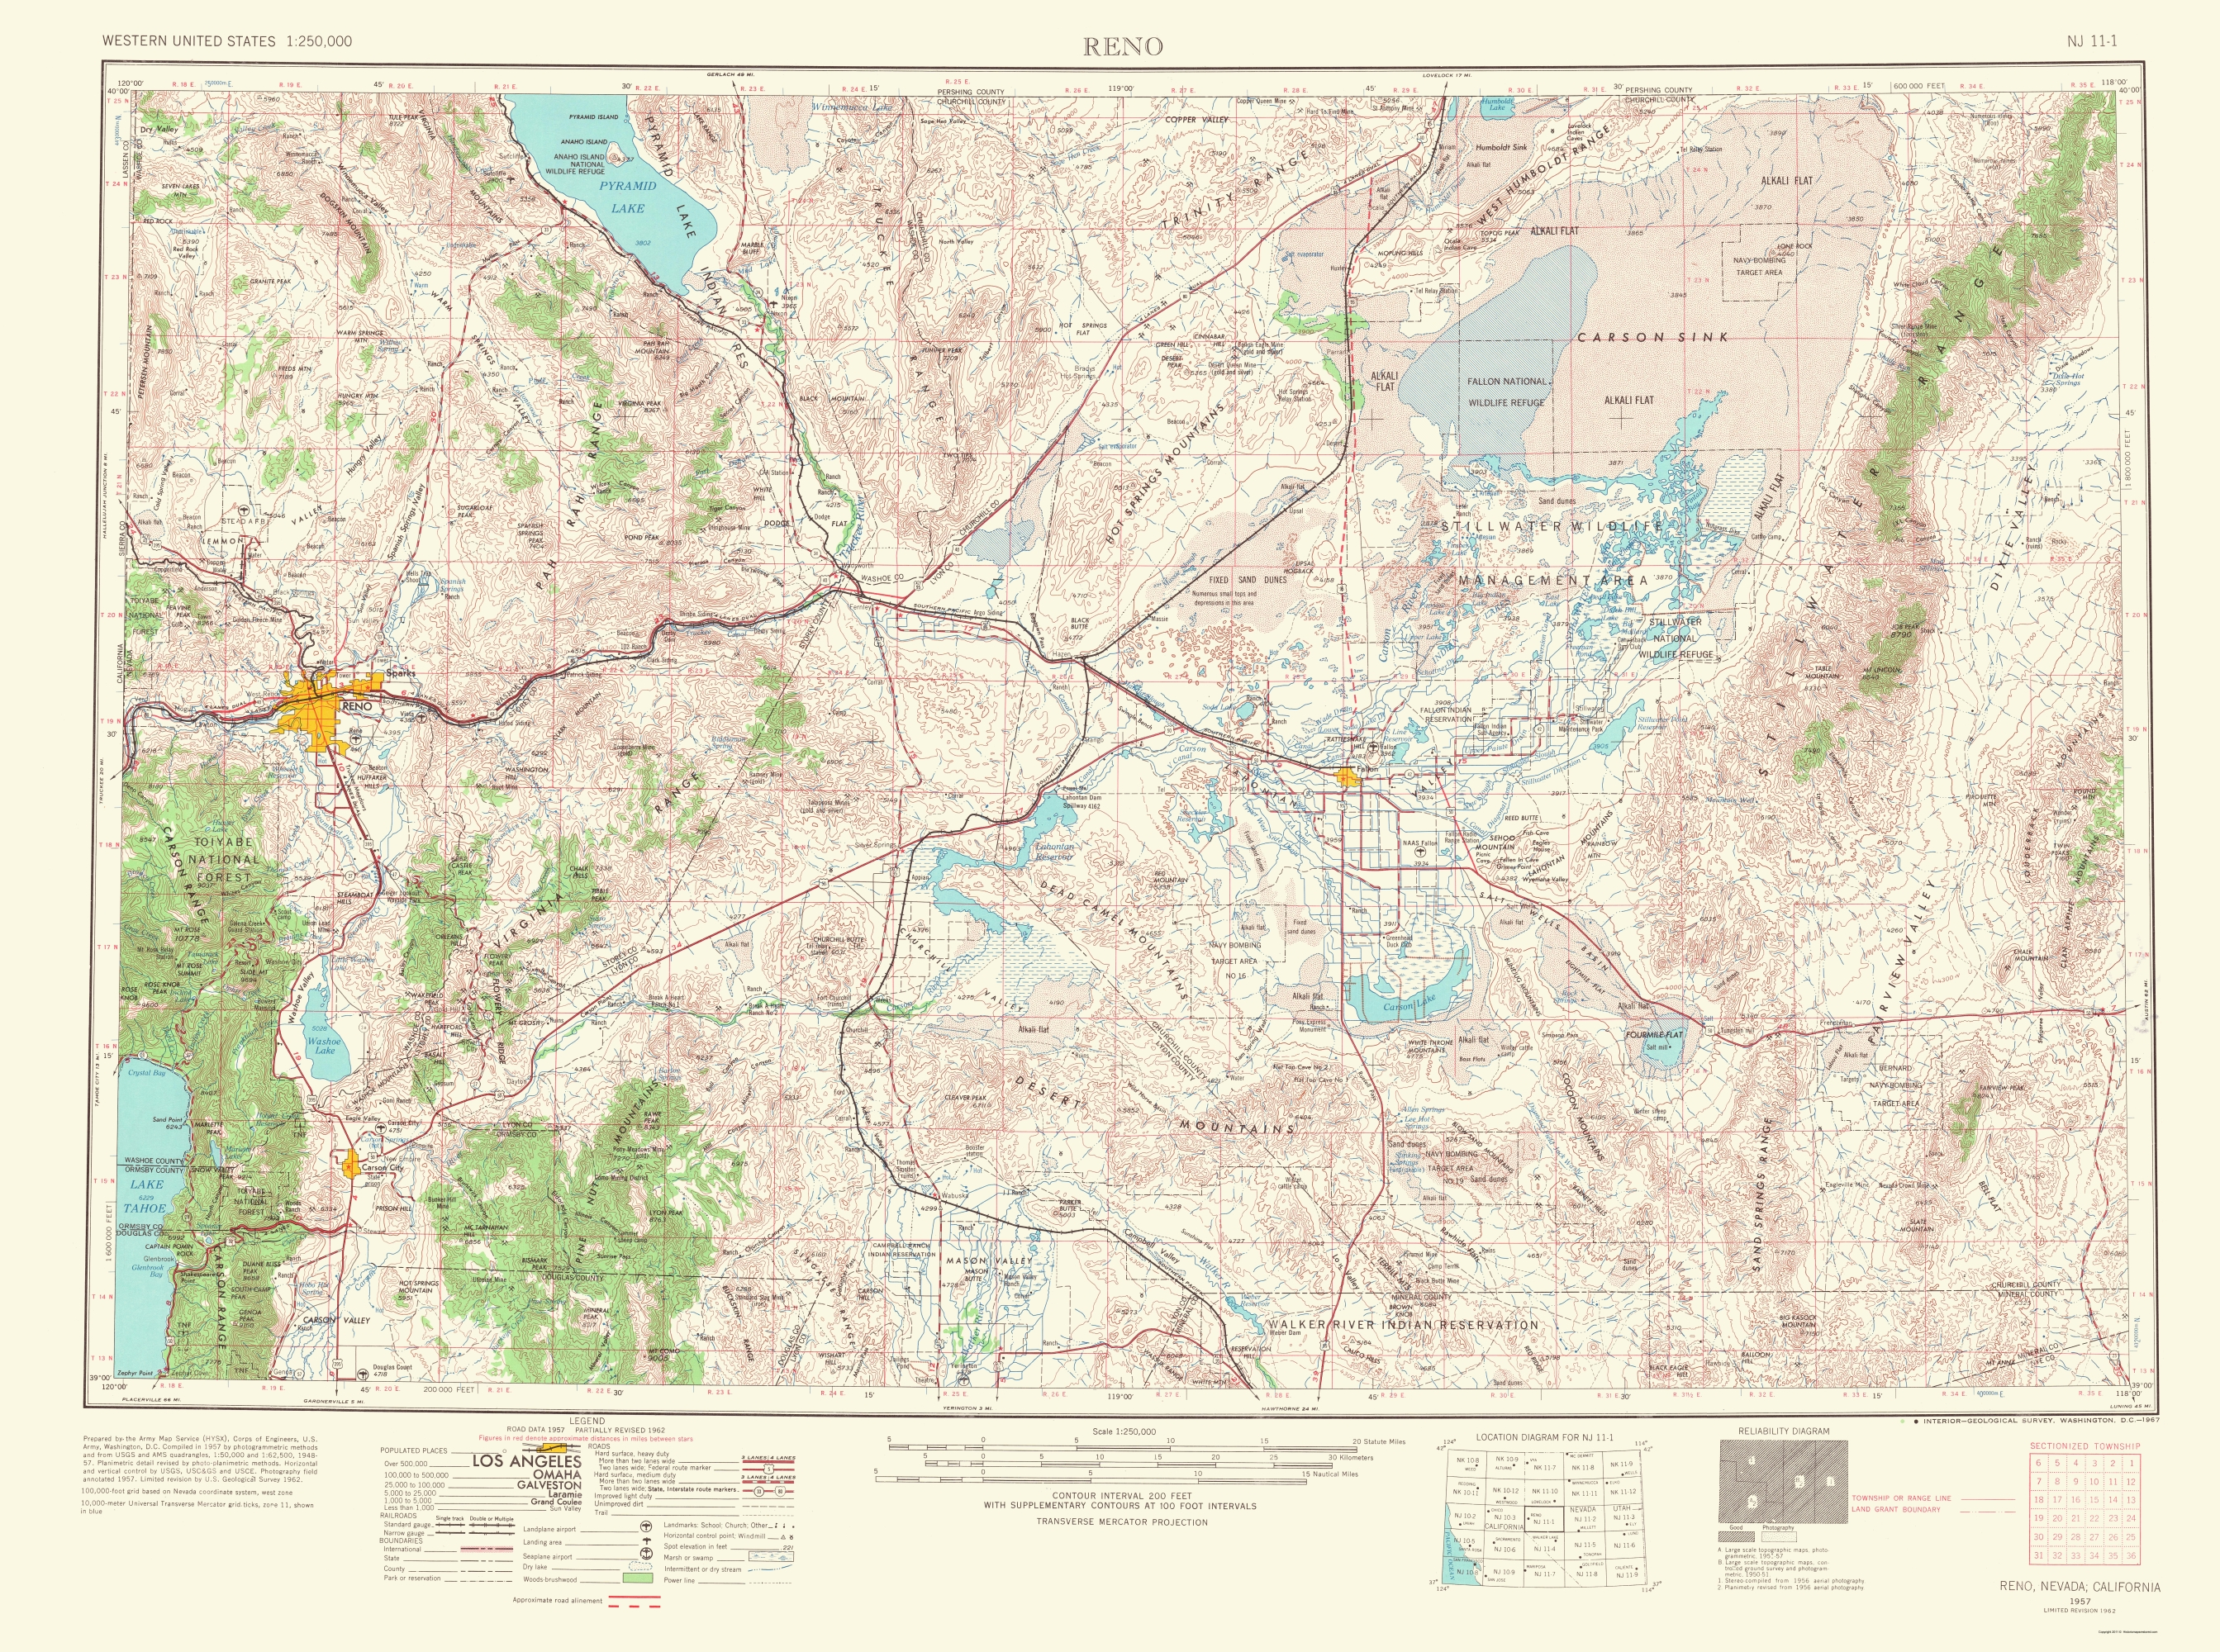 Old Topographical Map   Reno Nevada, California 1967